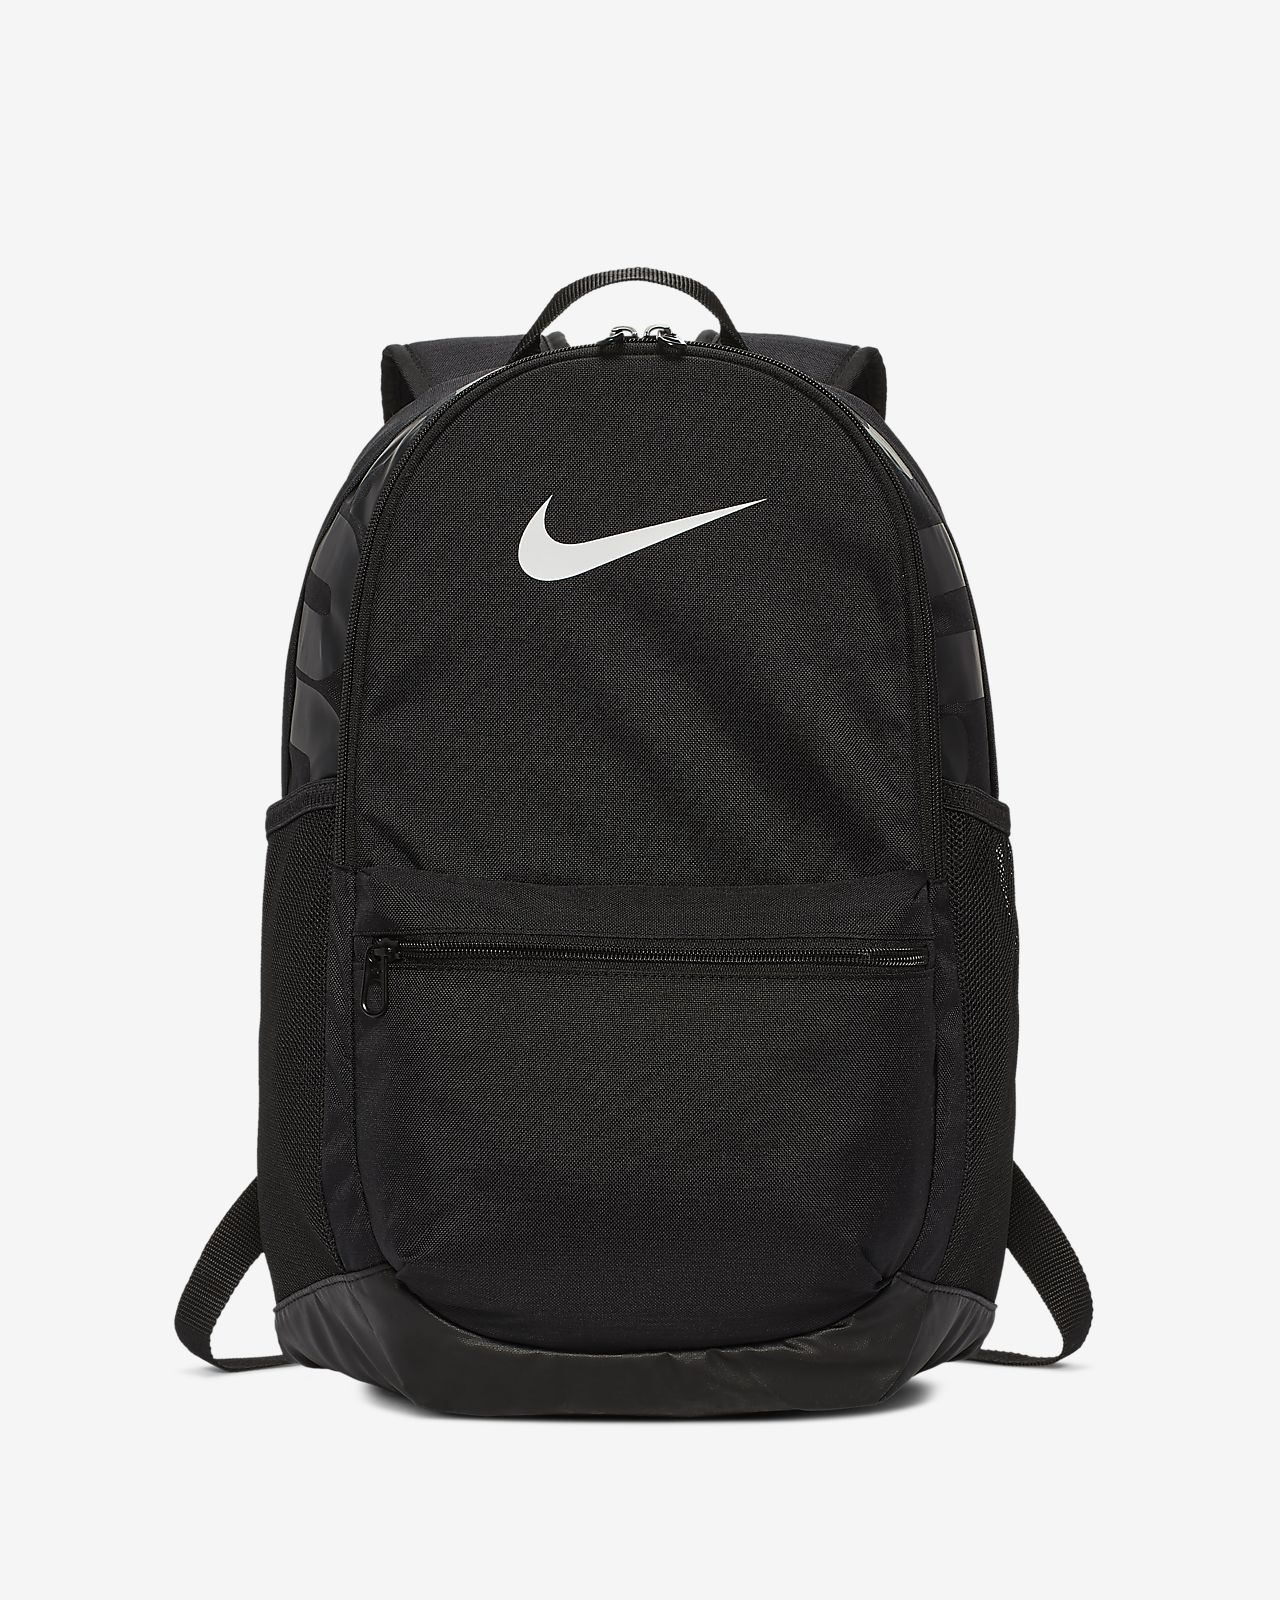 0625fbf26f36 Nike Brasilia (Medium) Training Backpack. Nike.com